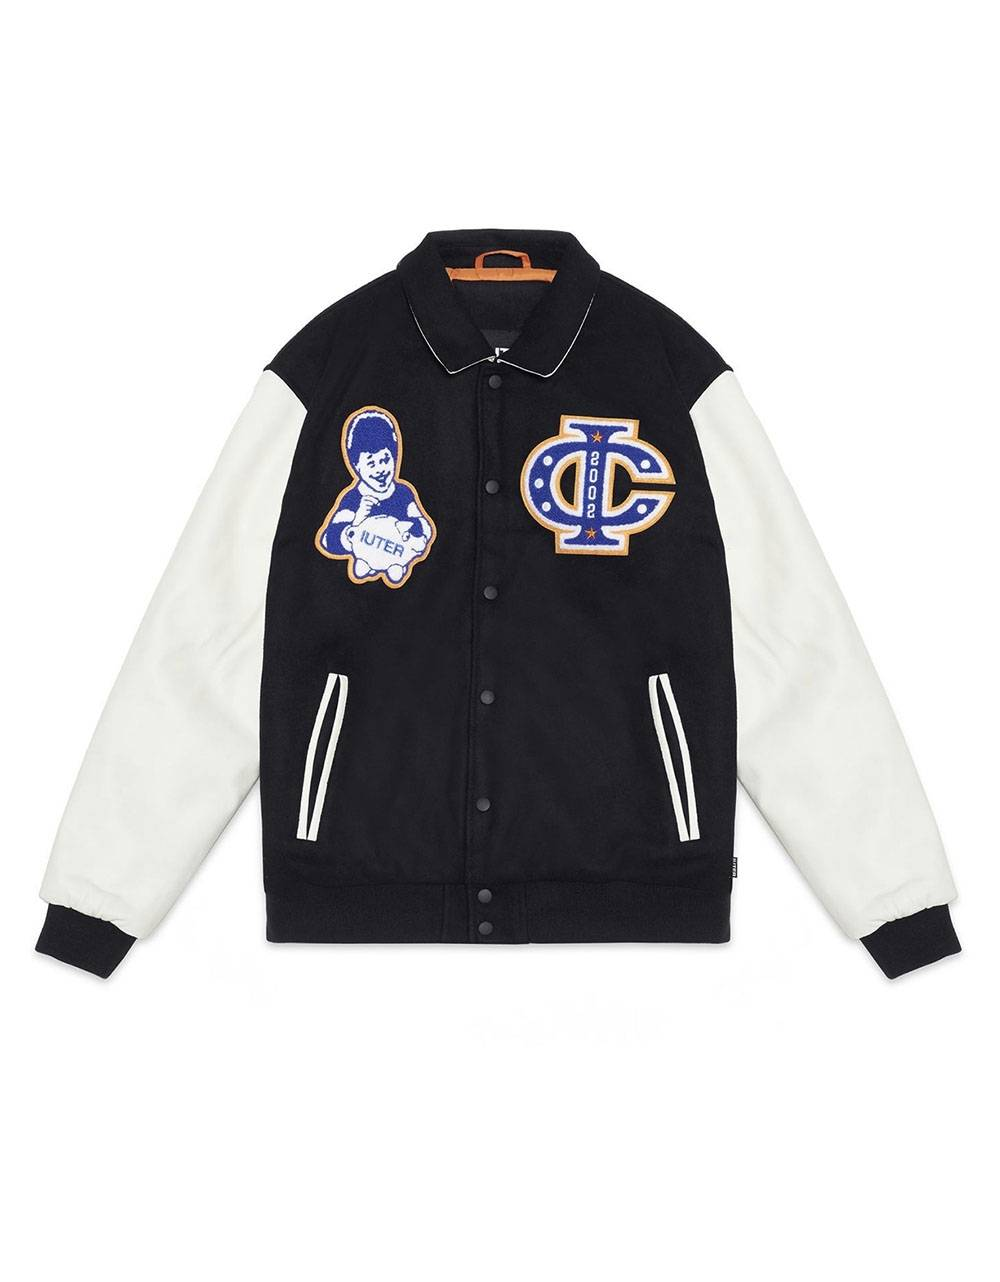 Iuter Fraternity varsity patch jacket - black IUTER Jacket 299,00 €